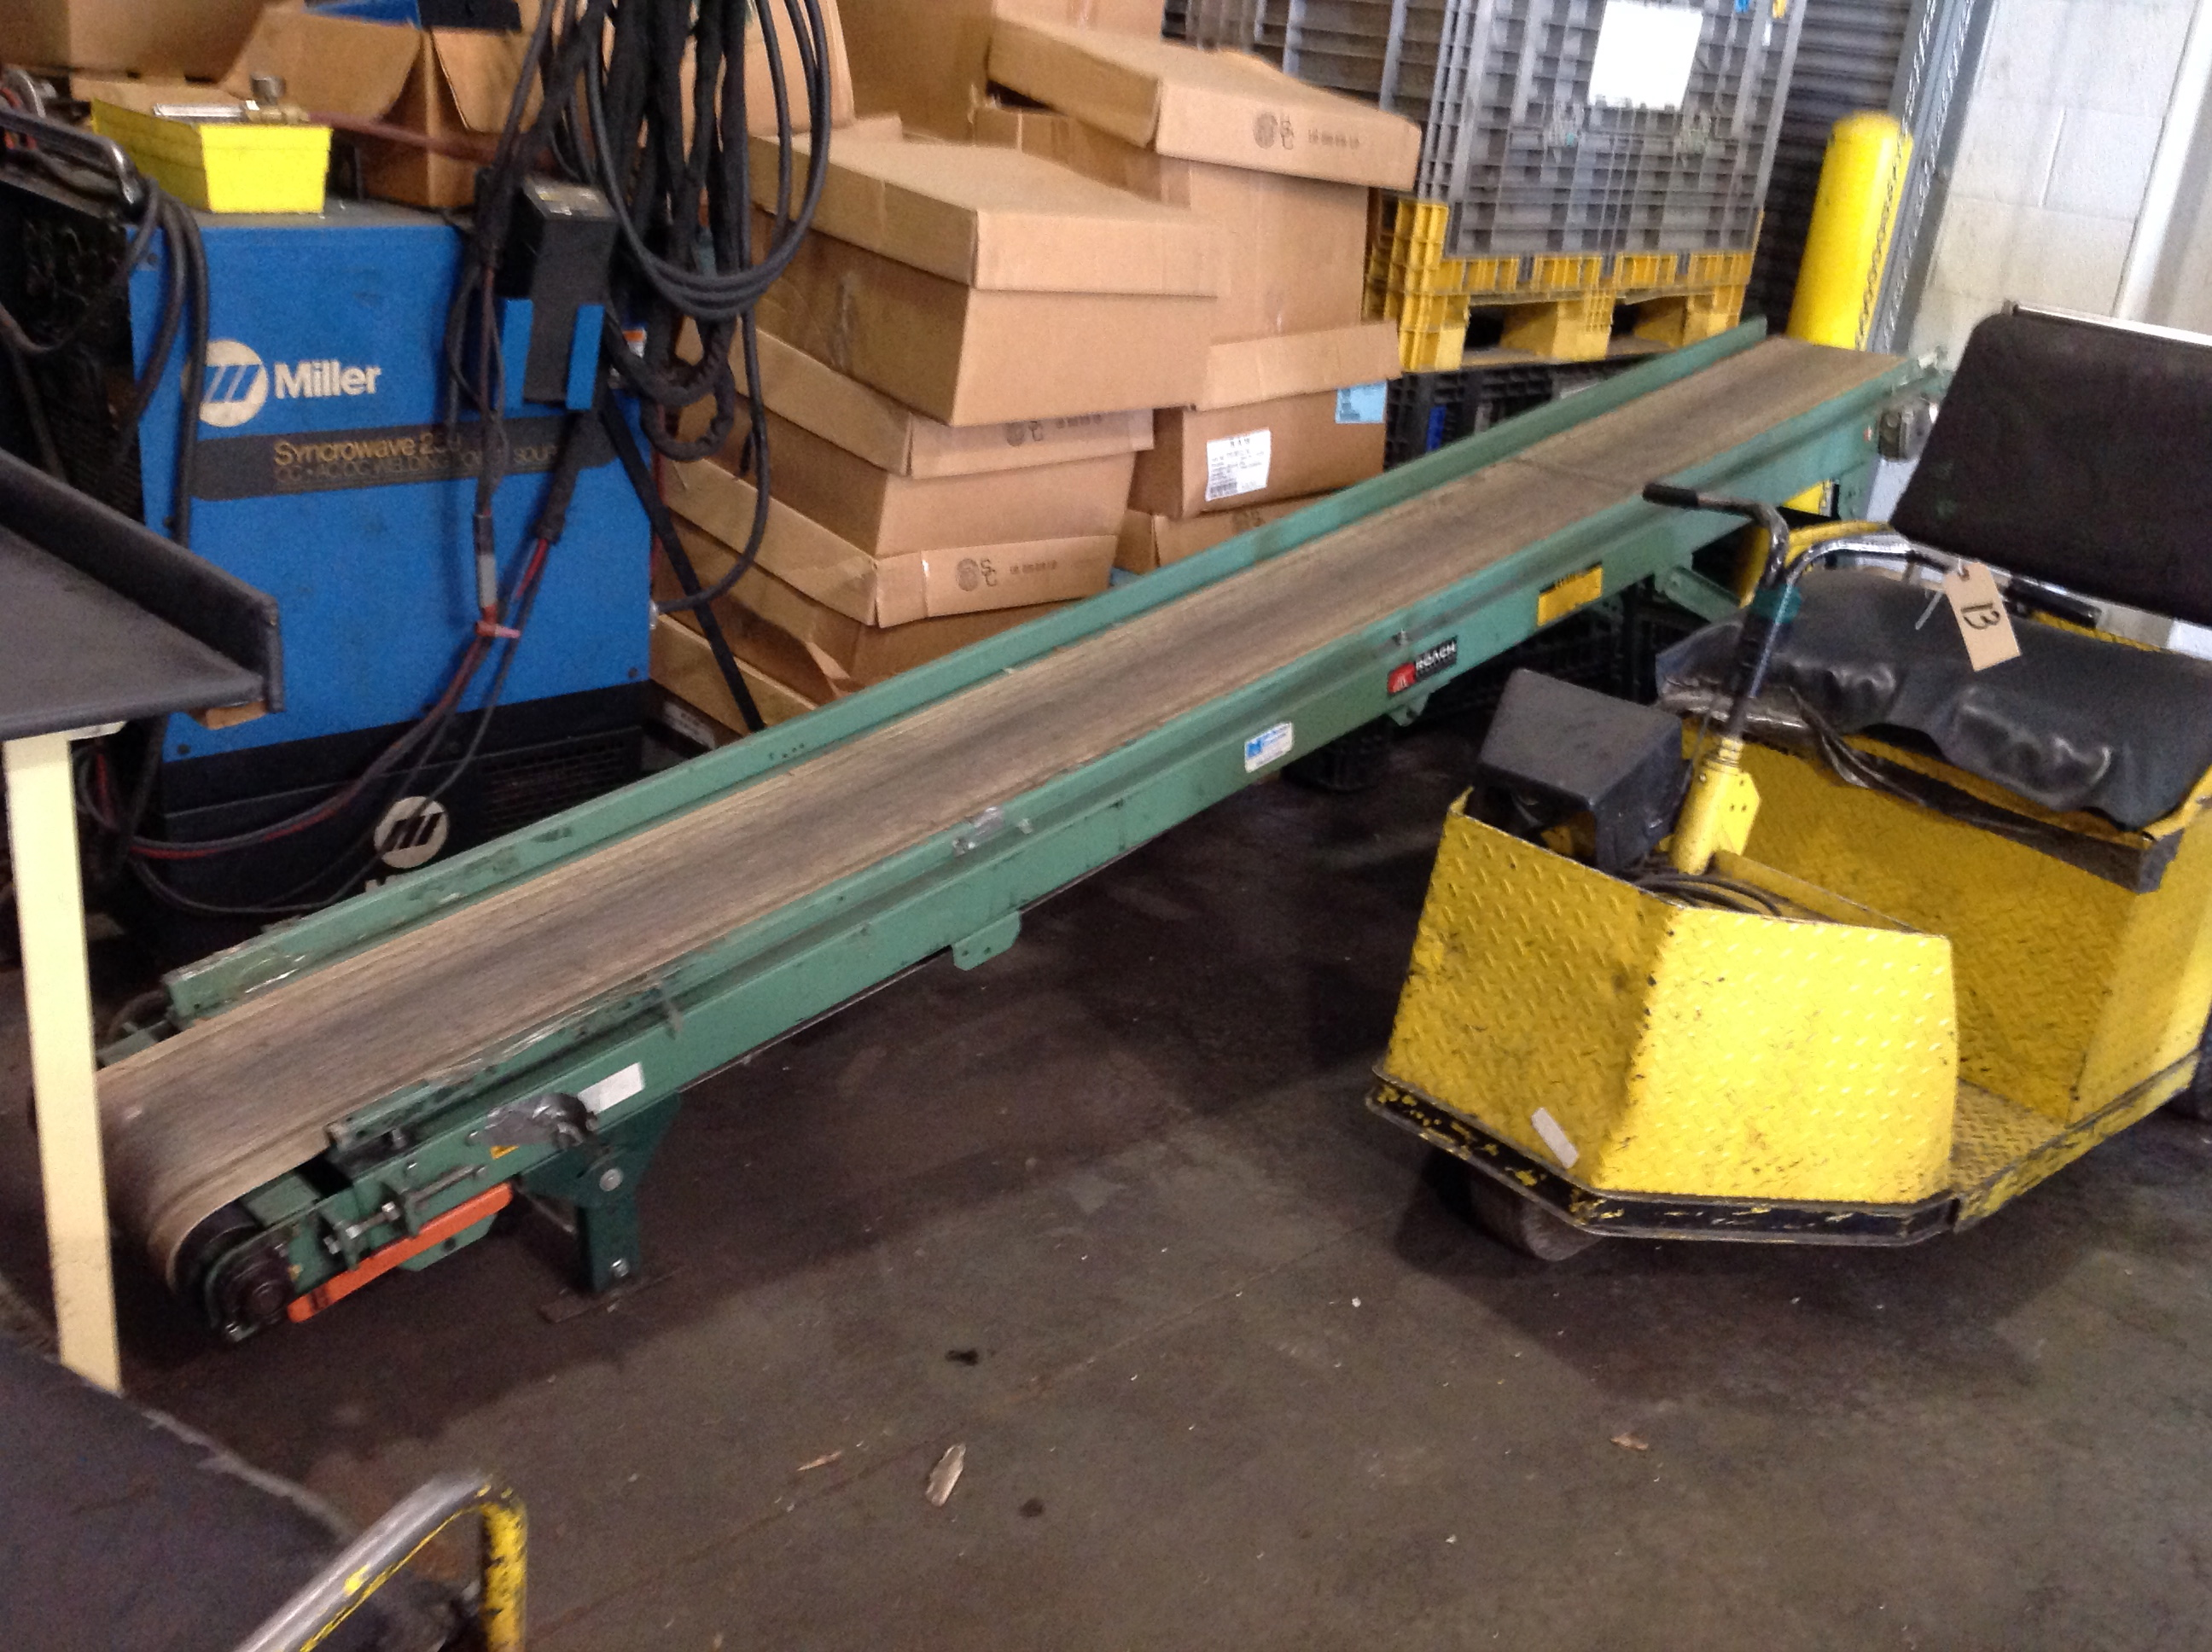 Roach motorized belt conveyor Motorized conveyor belt